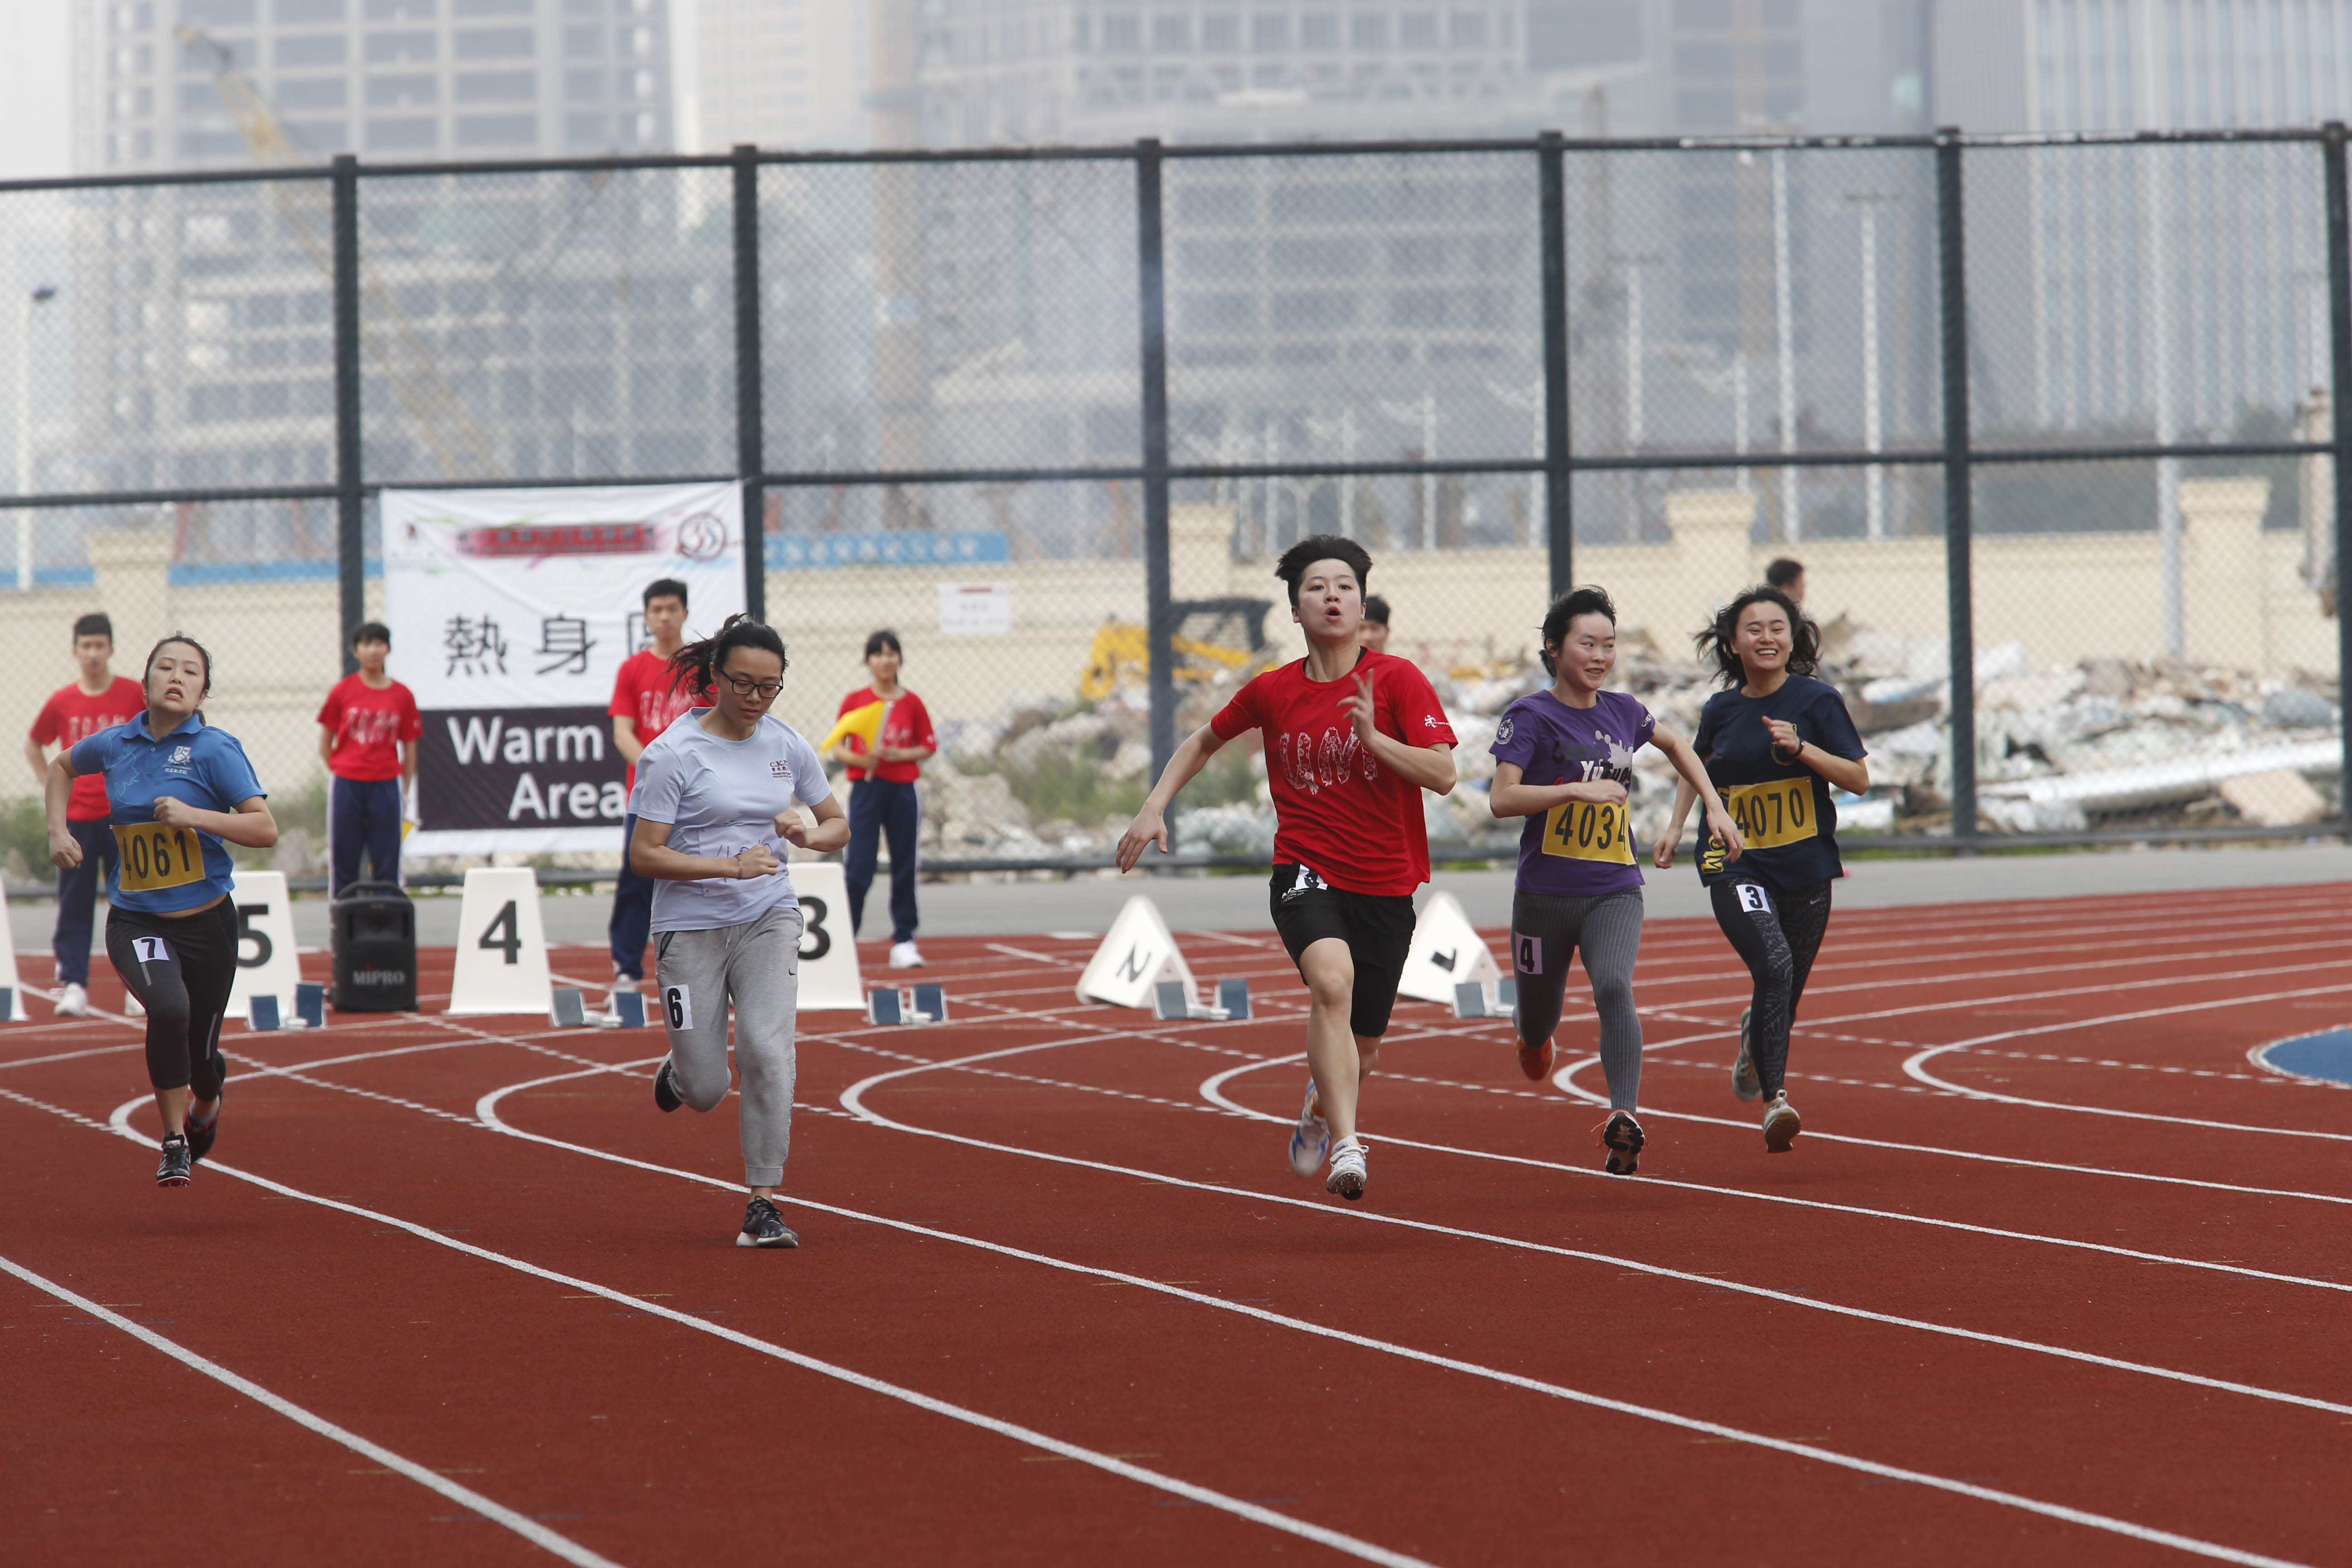 Participants in the UM Sports Day